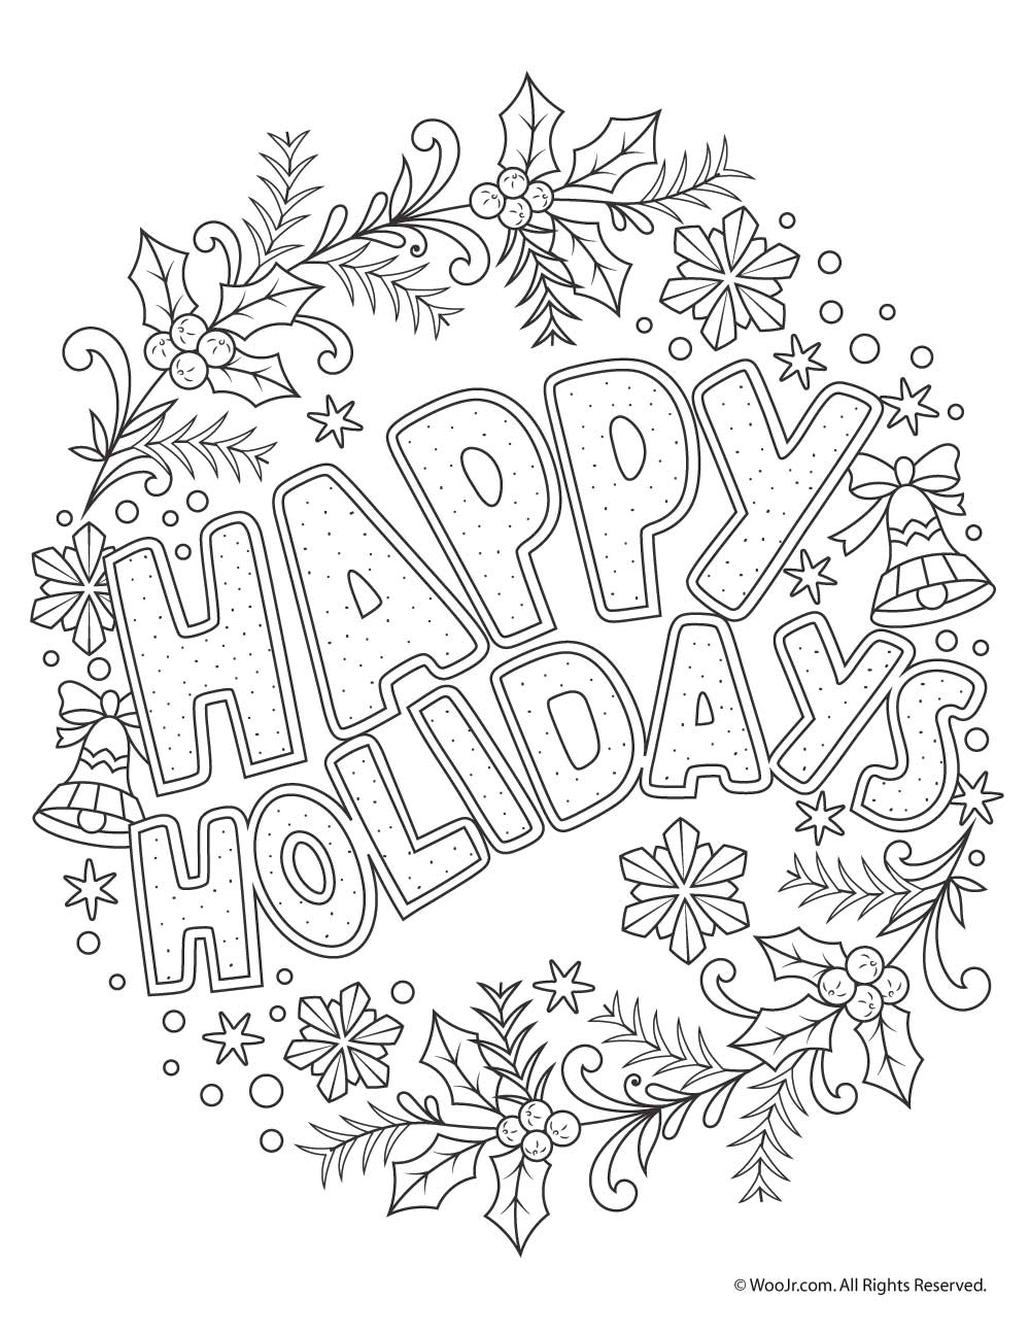 free holiday coloring pages free printable christmas coloring pages free printable pages holiday free coloring